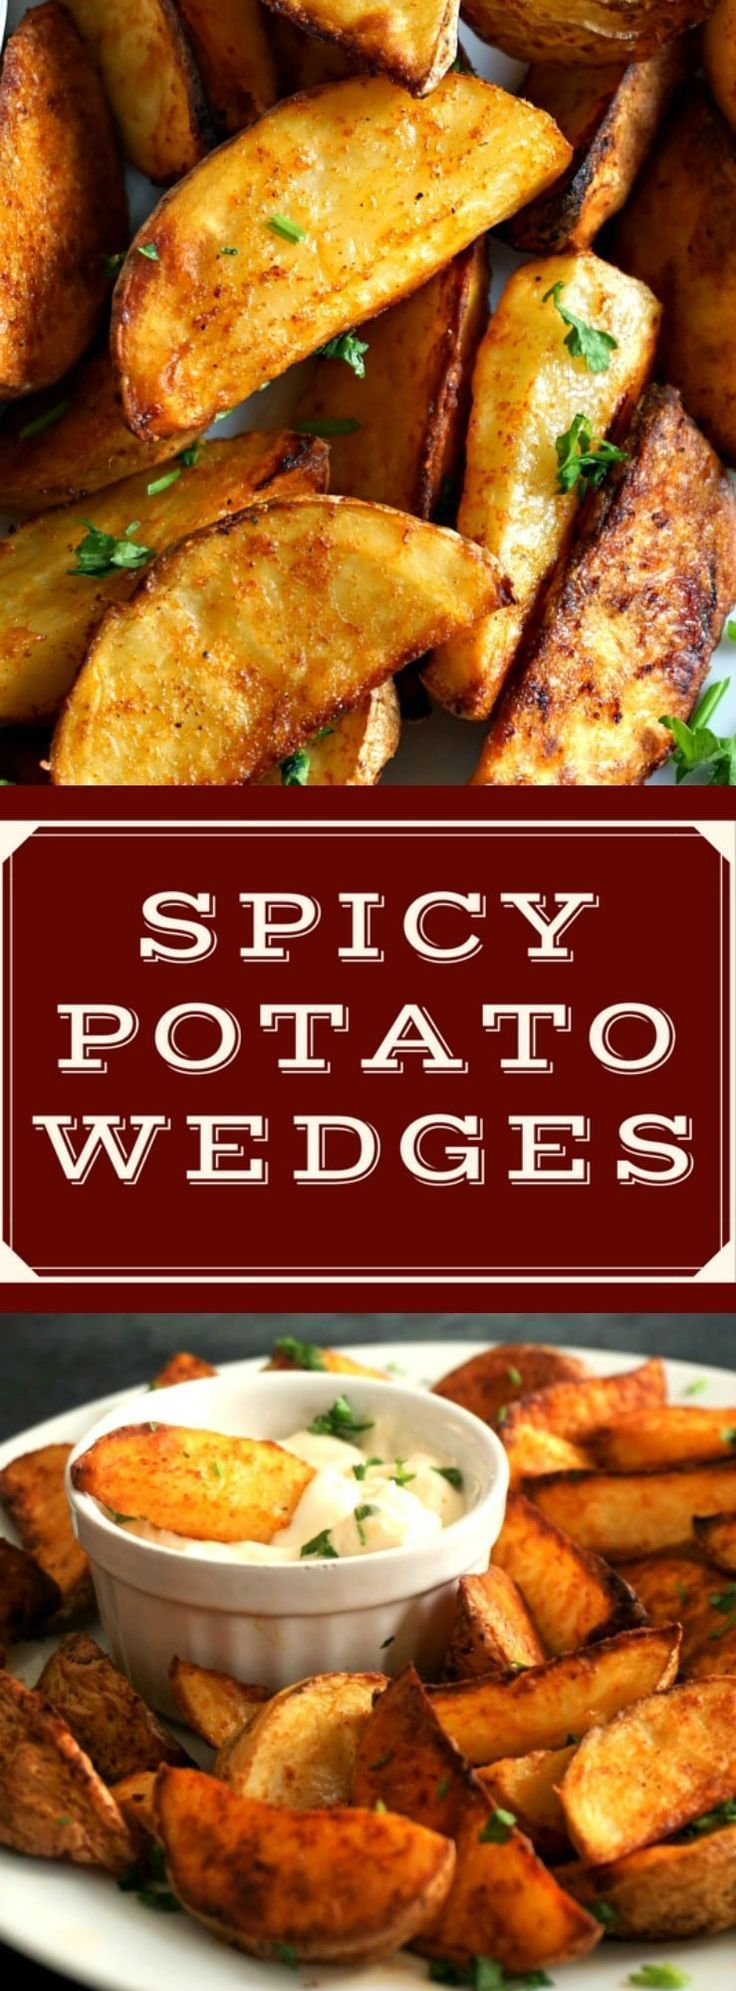 Homemade spicy potato wedges, the best side dish that goes wonderfully well with any roast, burgers, meat sandwiches or wraps, or just on their own. Serve them with your choice of sauce, and you are in for a treat. No need to order a take-away, have your own feast at home, they are just amazing. Great choice for the Game Day, or just a nice meal. #gamedayfood , #gameday , #wedges , #fingerfood , #tailgating